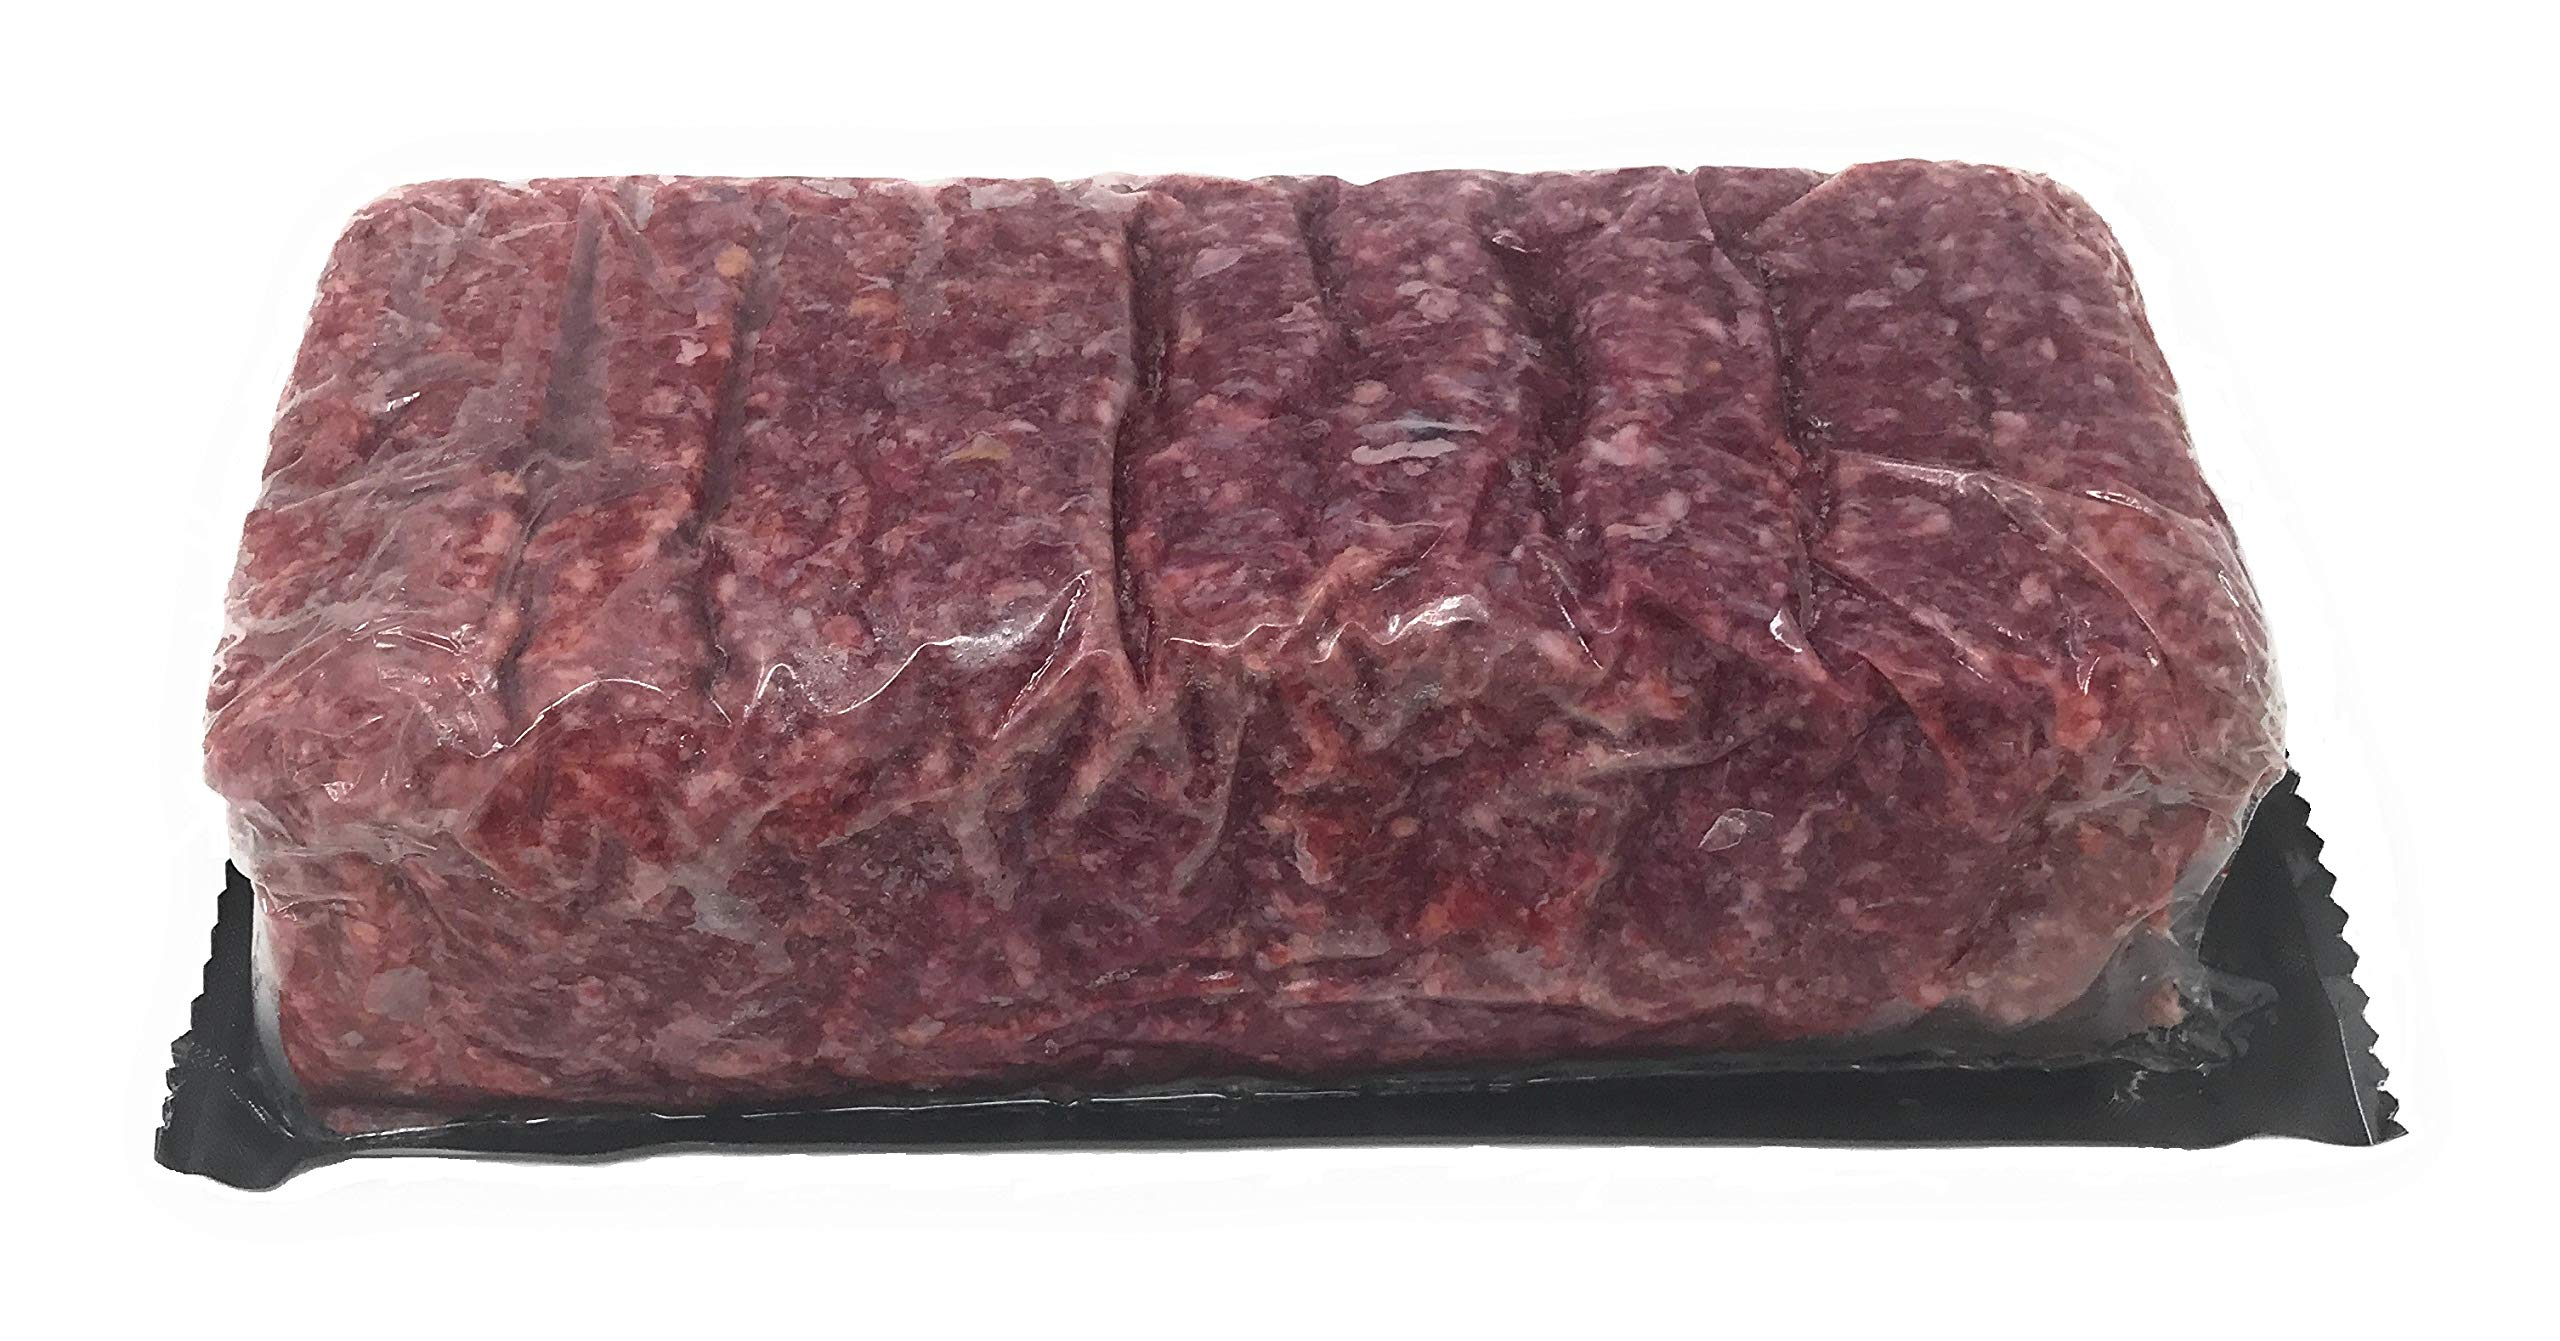 Ground Bison - 100% 80% Lean: 100% All-Natural, Grass-Fed, Grain Finish North American Buffalo Meat with no Growth Hormones or Antibiotics - USDA Tested Count 2 - 5 Lbs. Chub